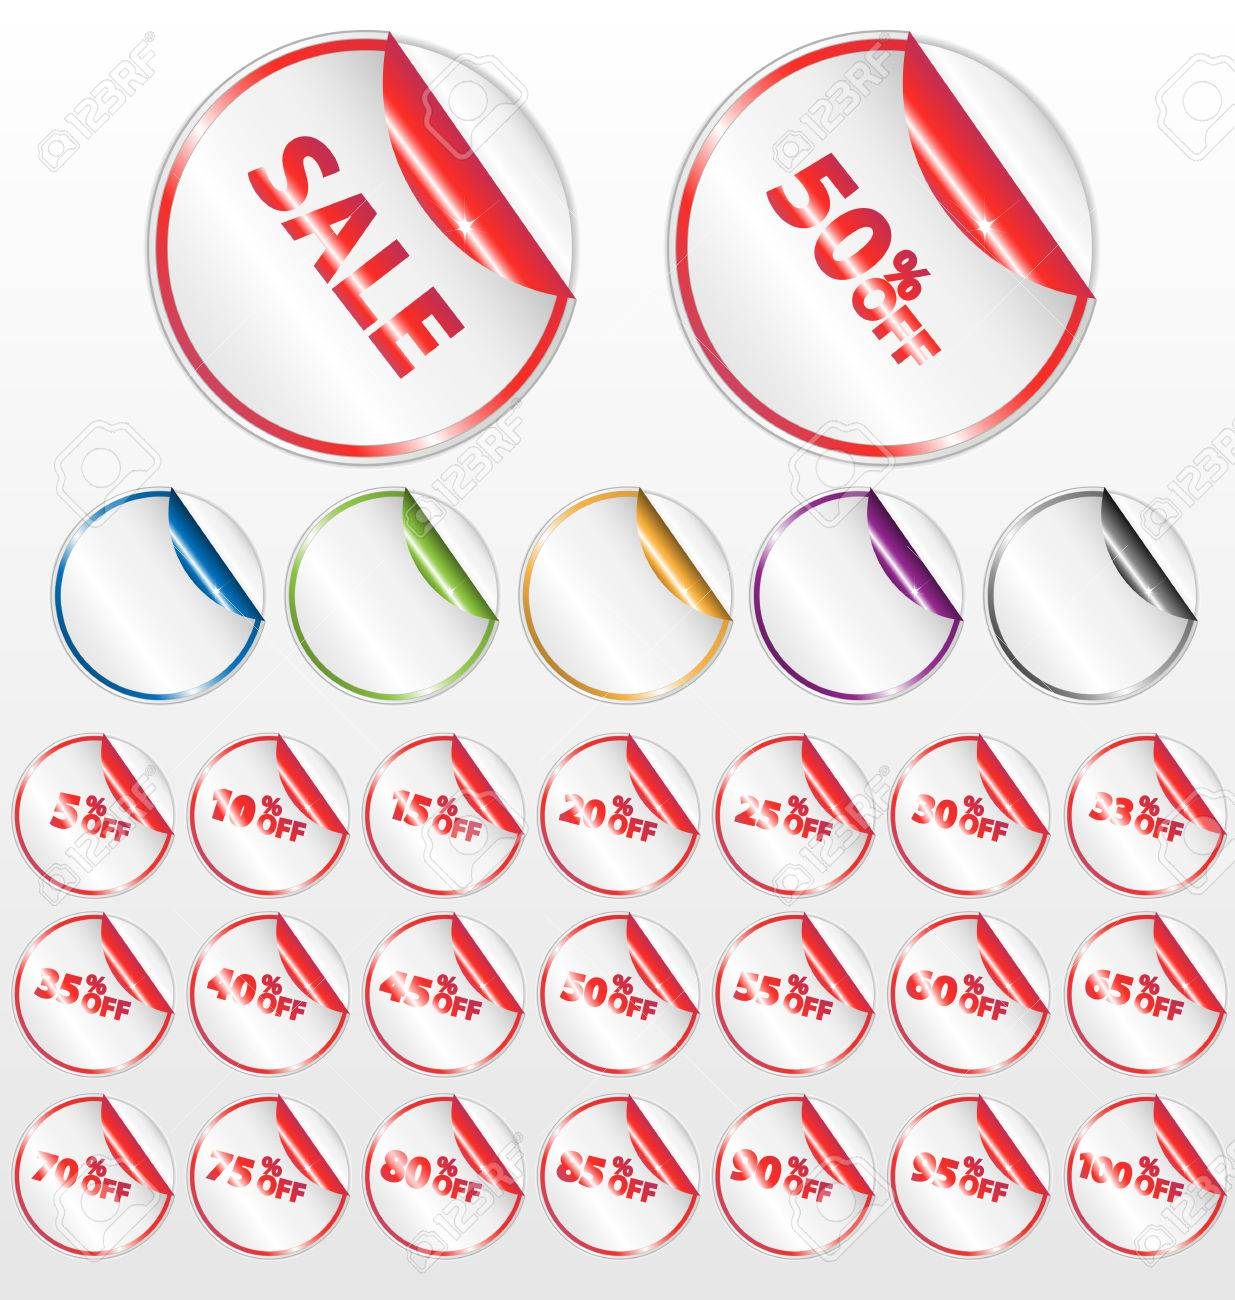 set of shiny retail icons with peel effect and discount percentages. Stock Vector - 6245083